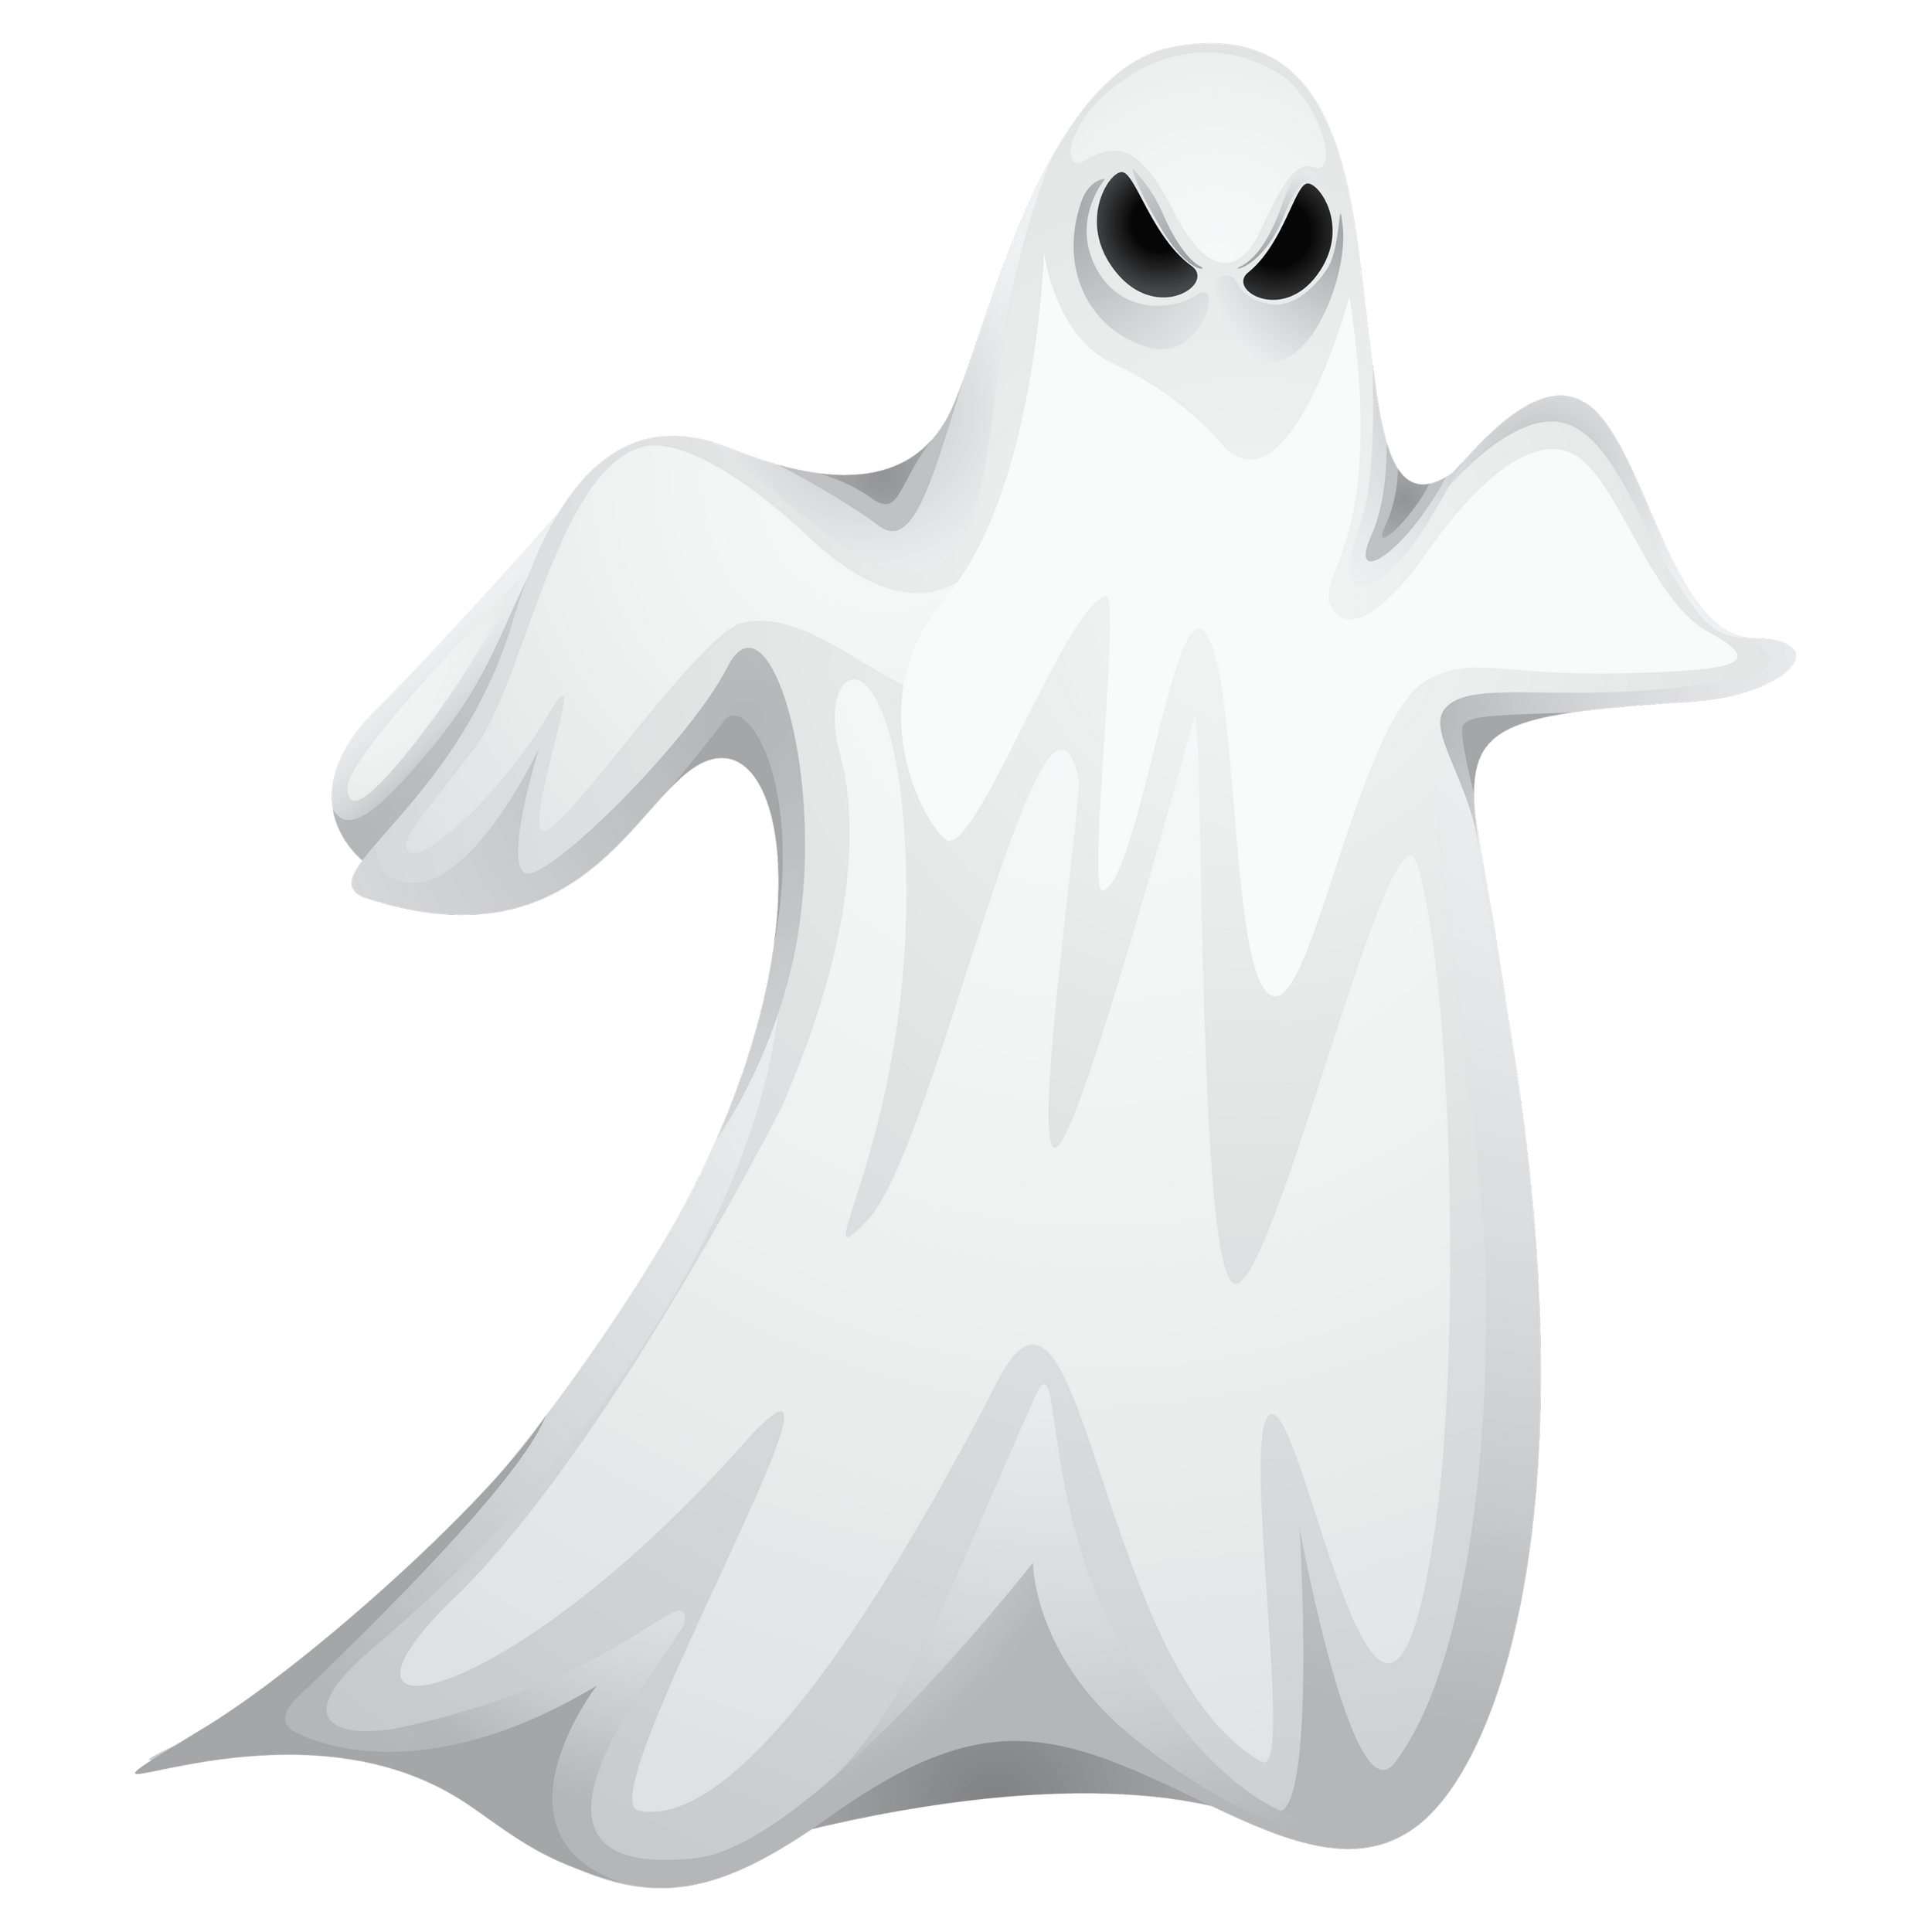 Halloween Angry Ghost Transparent Image